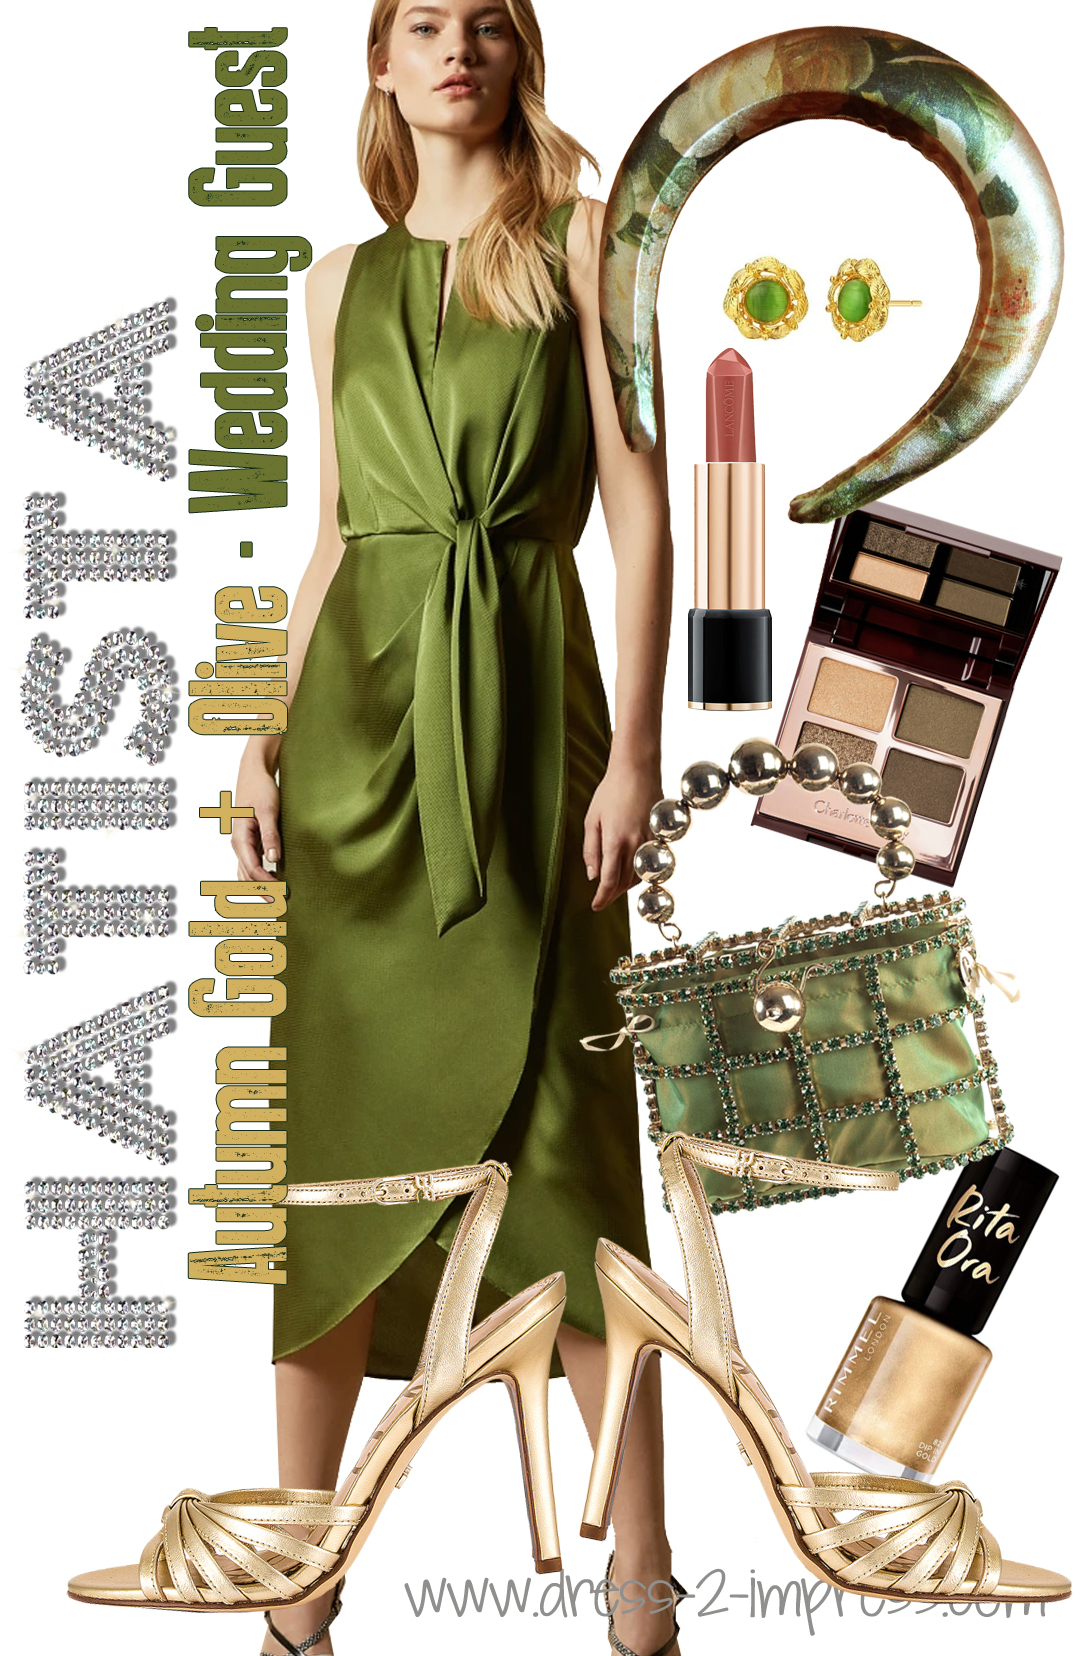 How to dress for an Autumn Wedding 2020. Autumn Wedding Guest Outfits 2020. What to wear to an Autumn Wedding 2020. Green and Gold Wedding Guests outfits 2020. How to dress for a Fall wedding 2020. How to wear Olive Green 2020. What colours go with Olive Green 2020. What to wear to a winter wedding 2020.